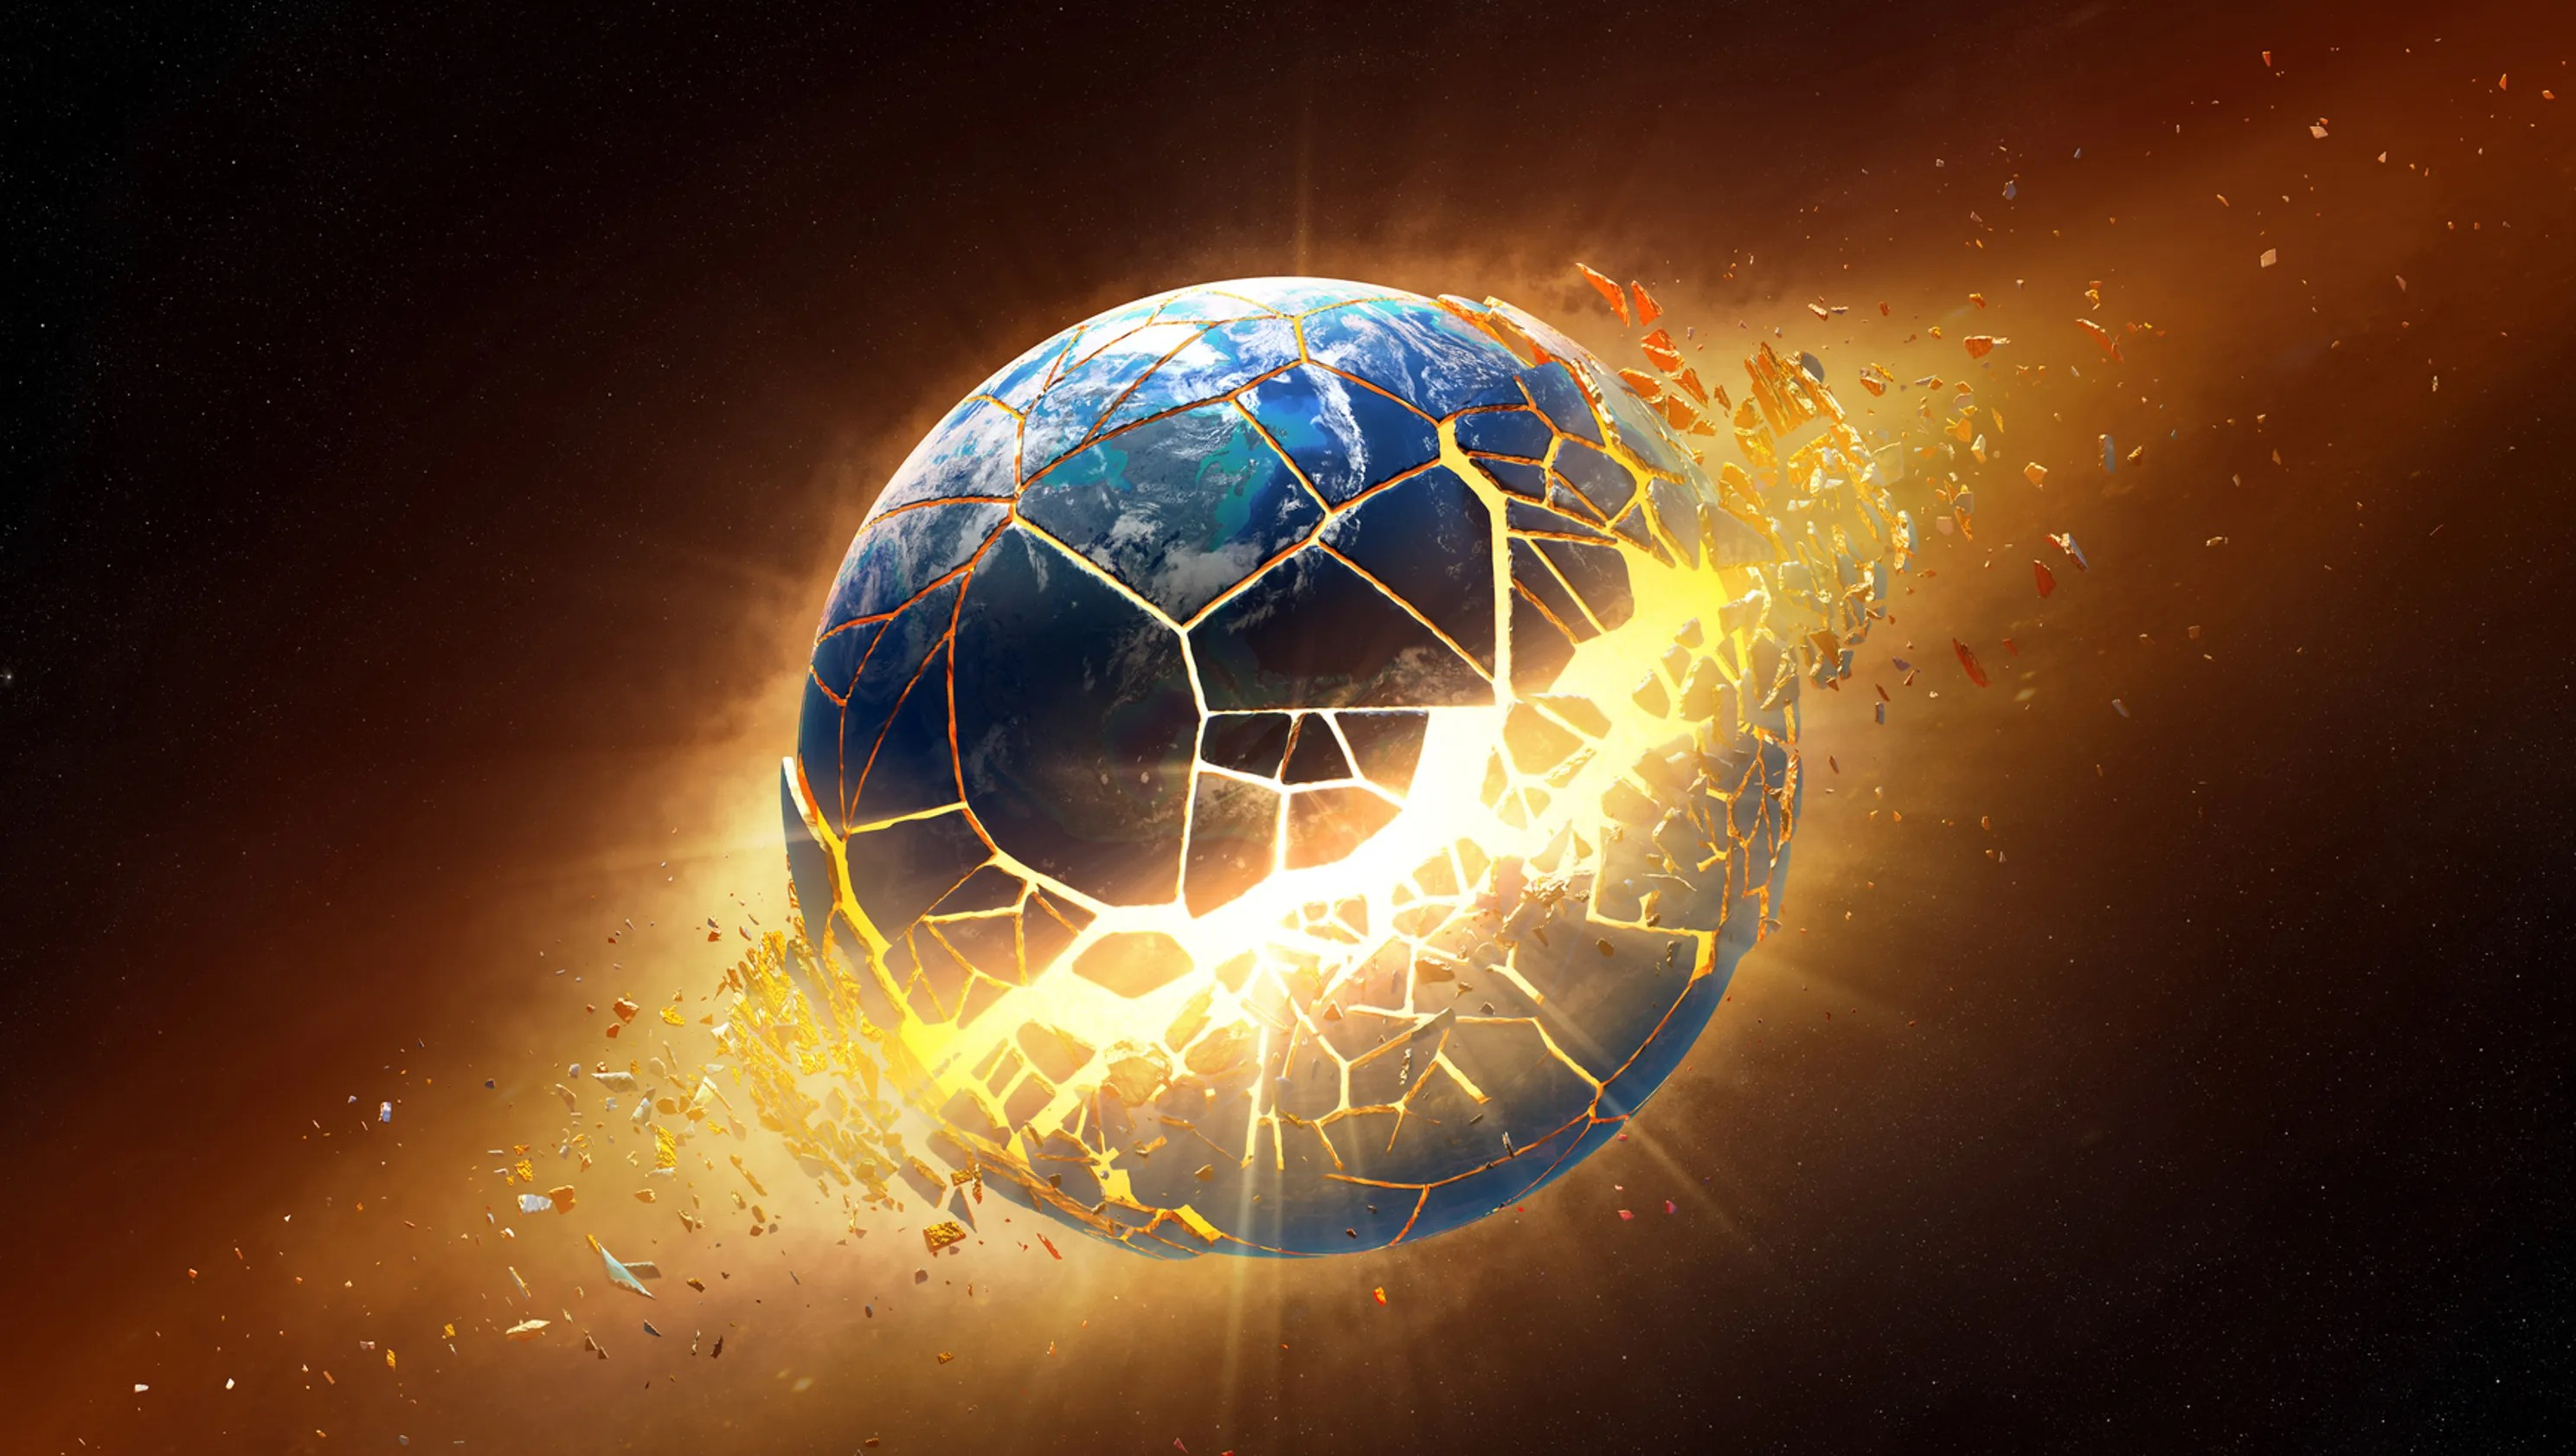 Falling Money Wallpaper Hd Planet X World Ending Saturday Here Are 8 Times It Didn T